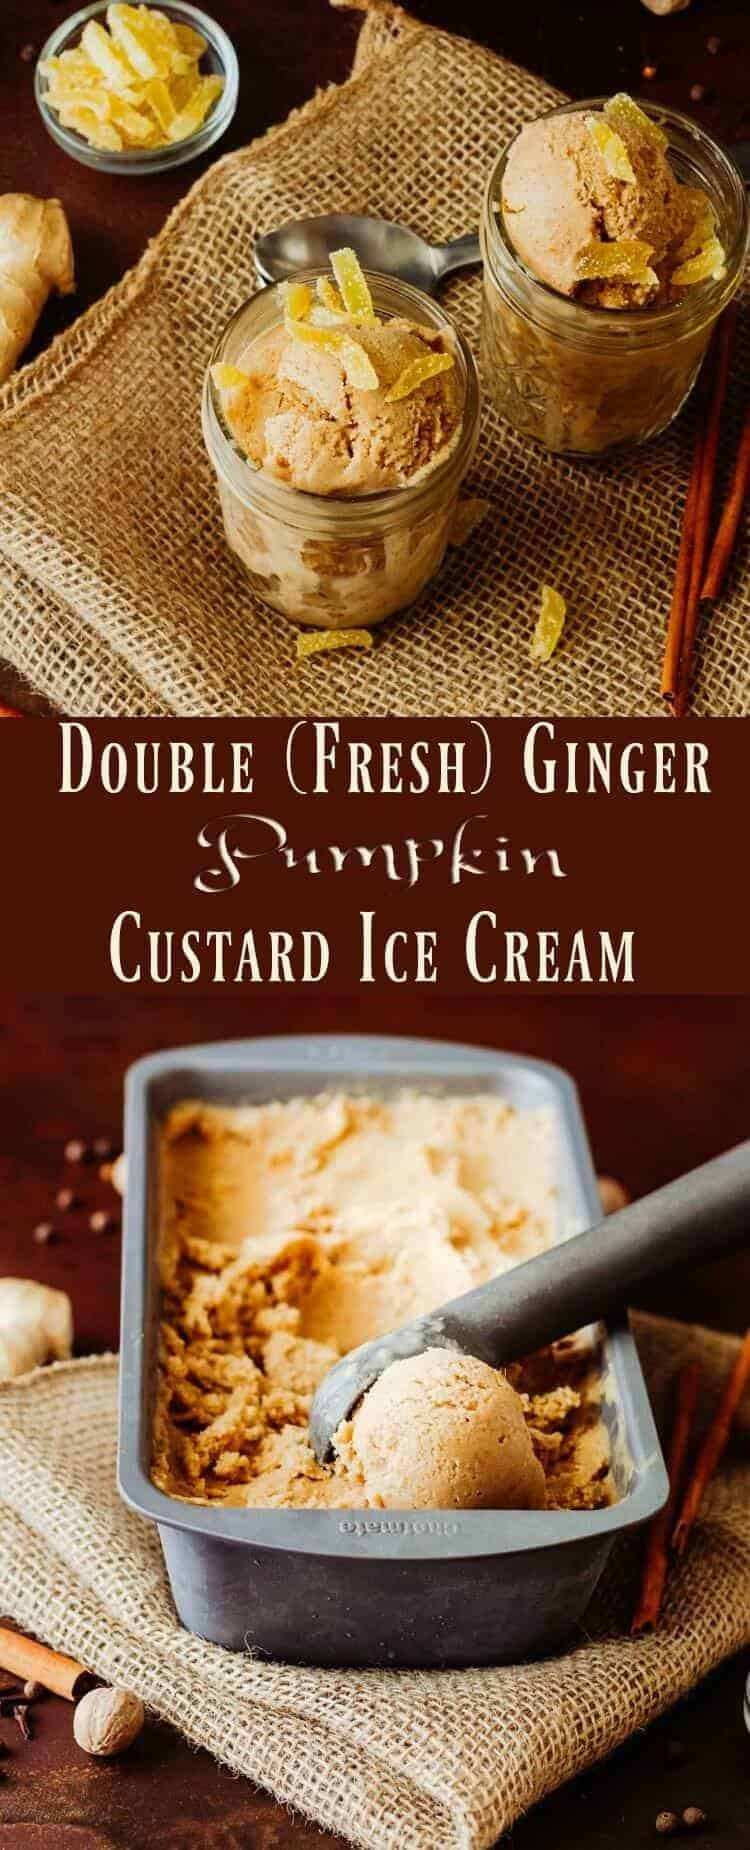 Double (Fresh) Ginger Pumpkin Custard Ice Cream Pin - The best of pumpkin pie in a frozen custard,Double (Fresh) Ginger Pumpkin Custard Ice Cream will remind you of the best pumpkin pie you ever had! A pumpkin custard base gets a flavor boost with fresh ginger paste, grated fresh nutmeg, cinnamon, allspice, and cloves. Garnished with candied ginger, this flavor bomb may become your favorite fall dessert! #falldesserts #frozencustard #pumpkinicecream #glutenfreedesserts